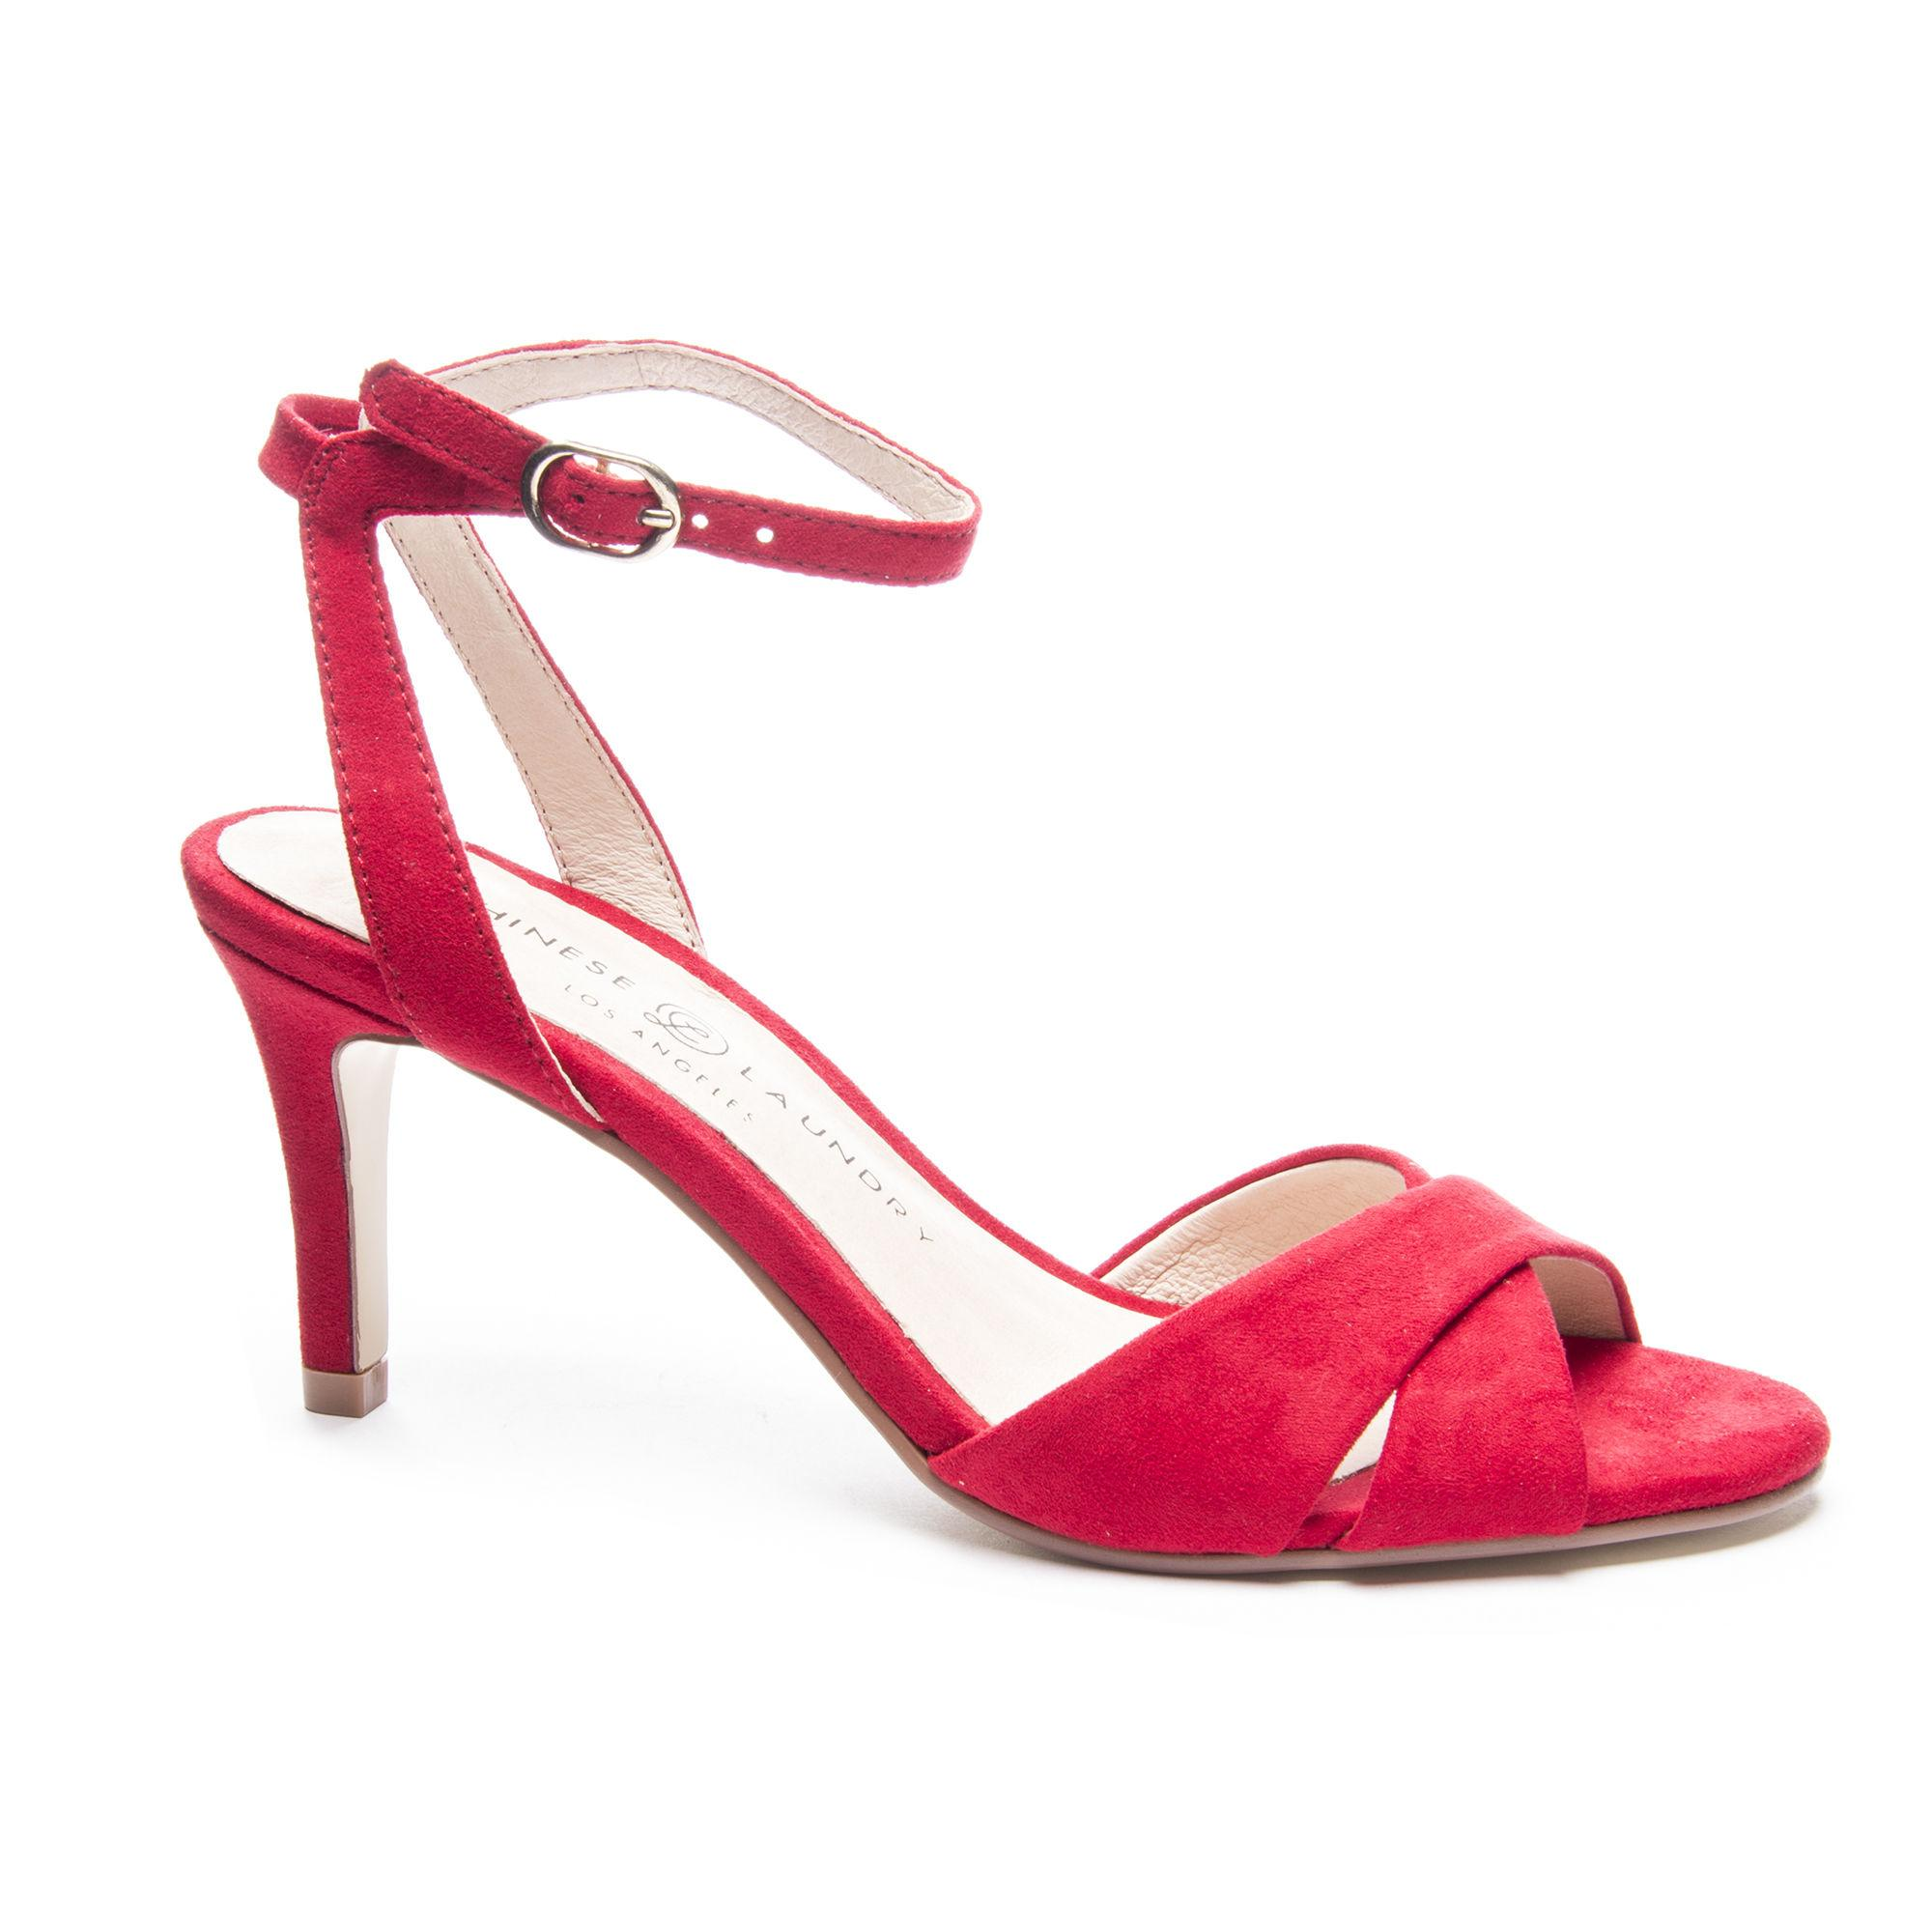 581c8d1107b Lyst - Chinese Laundry Rosita Ankle Strap Sandal in Red